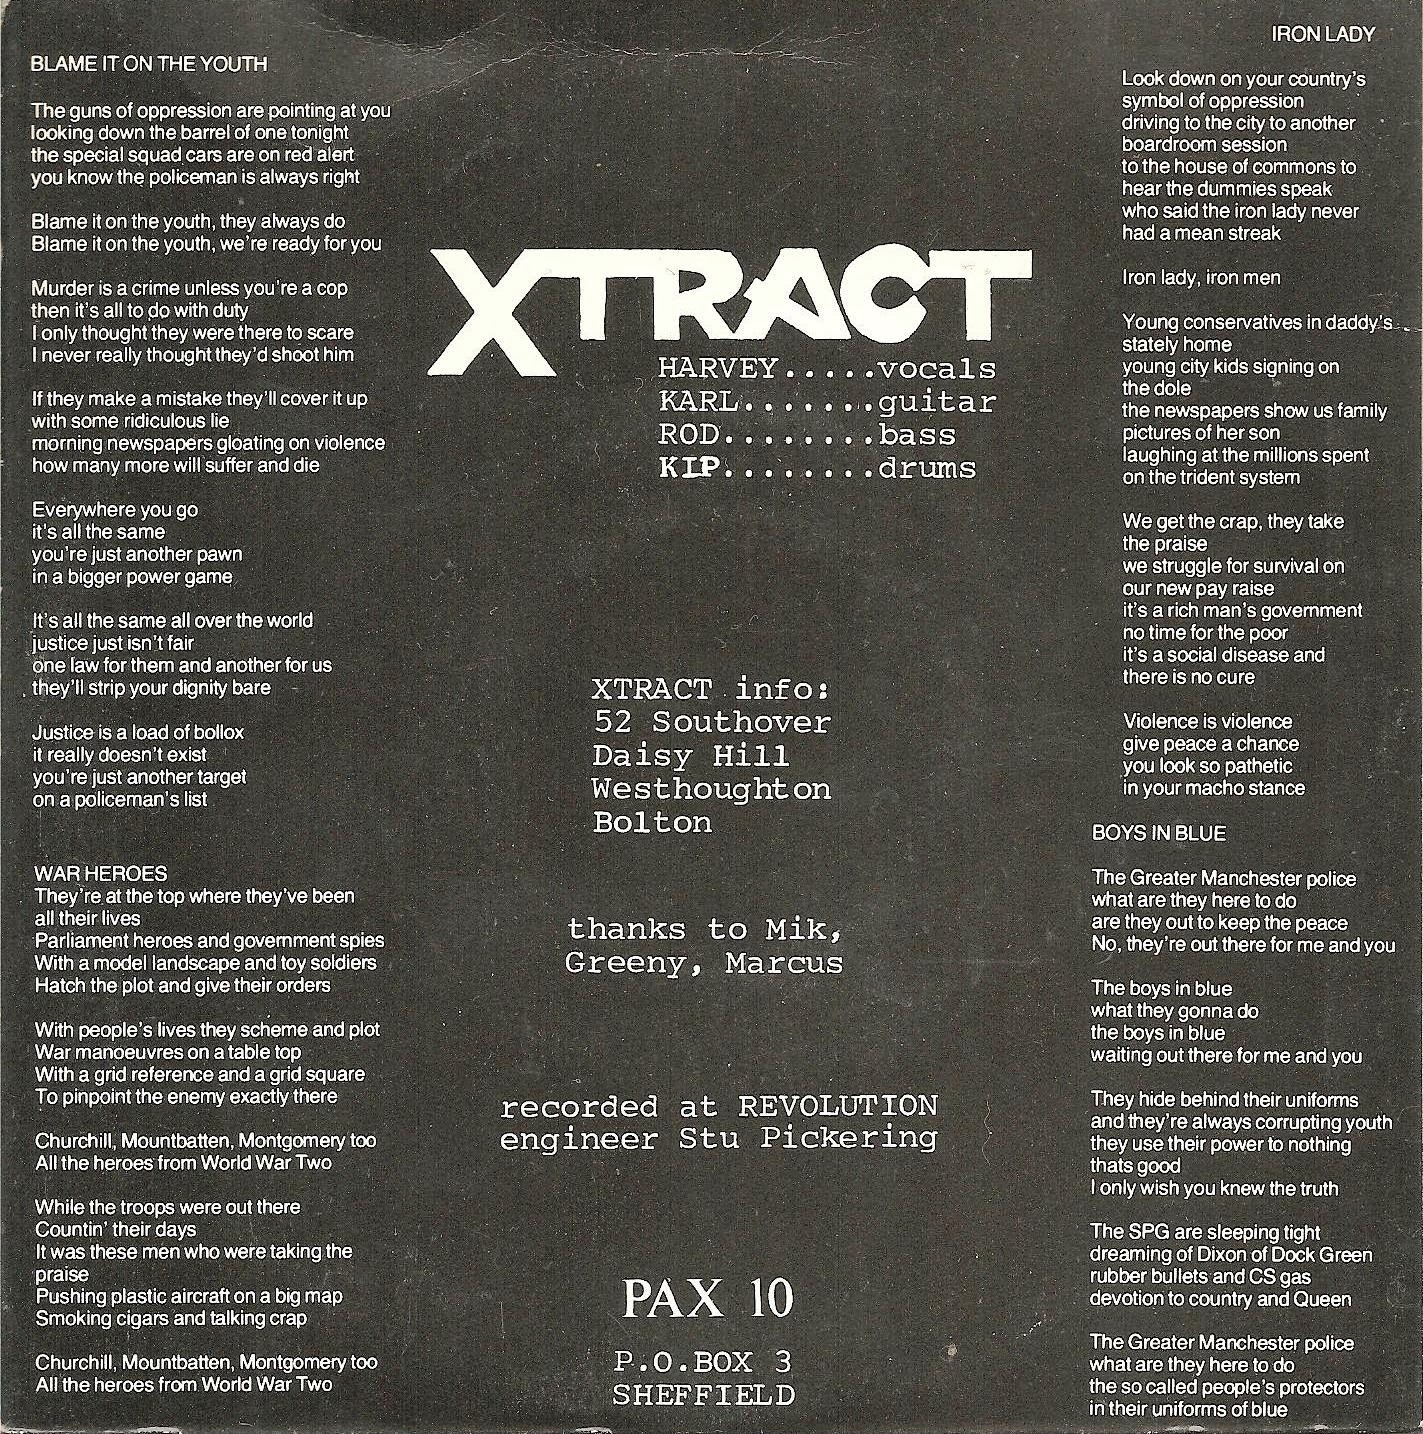 Xtract Blame It On The Youth